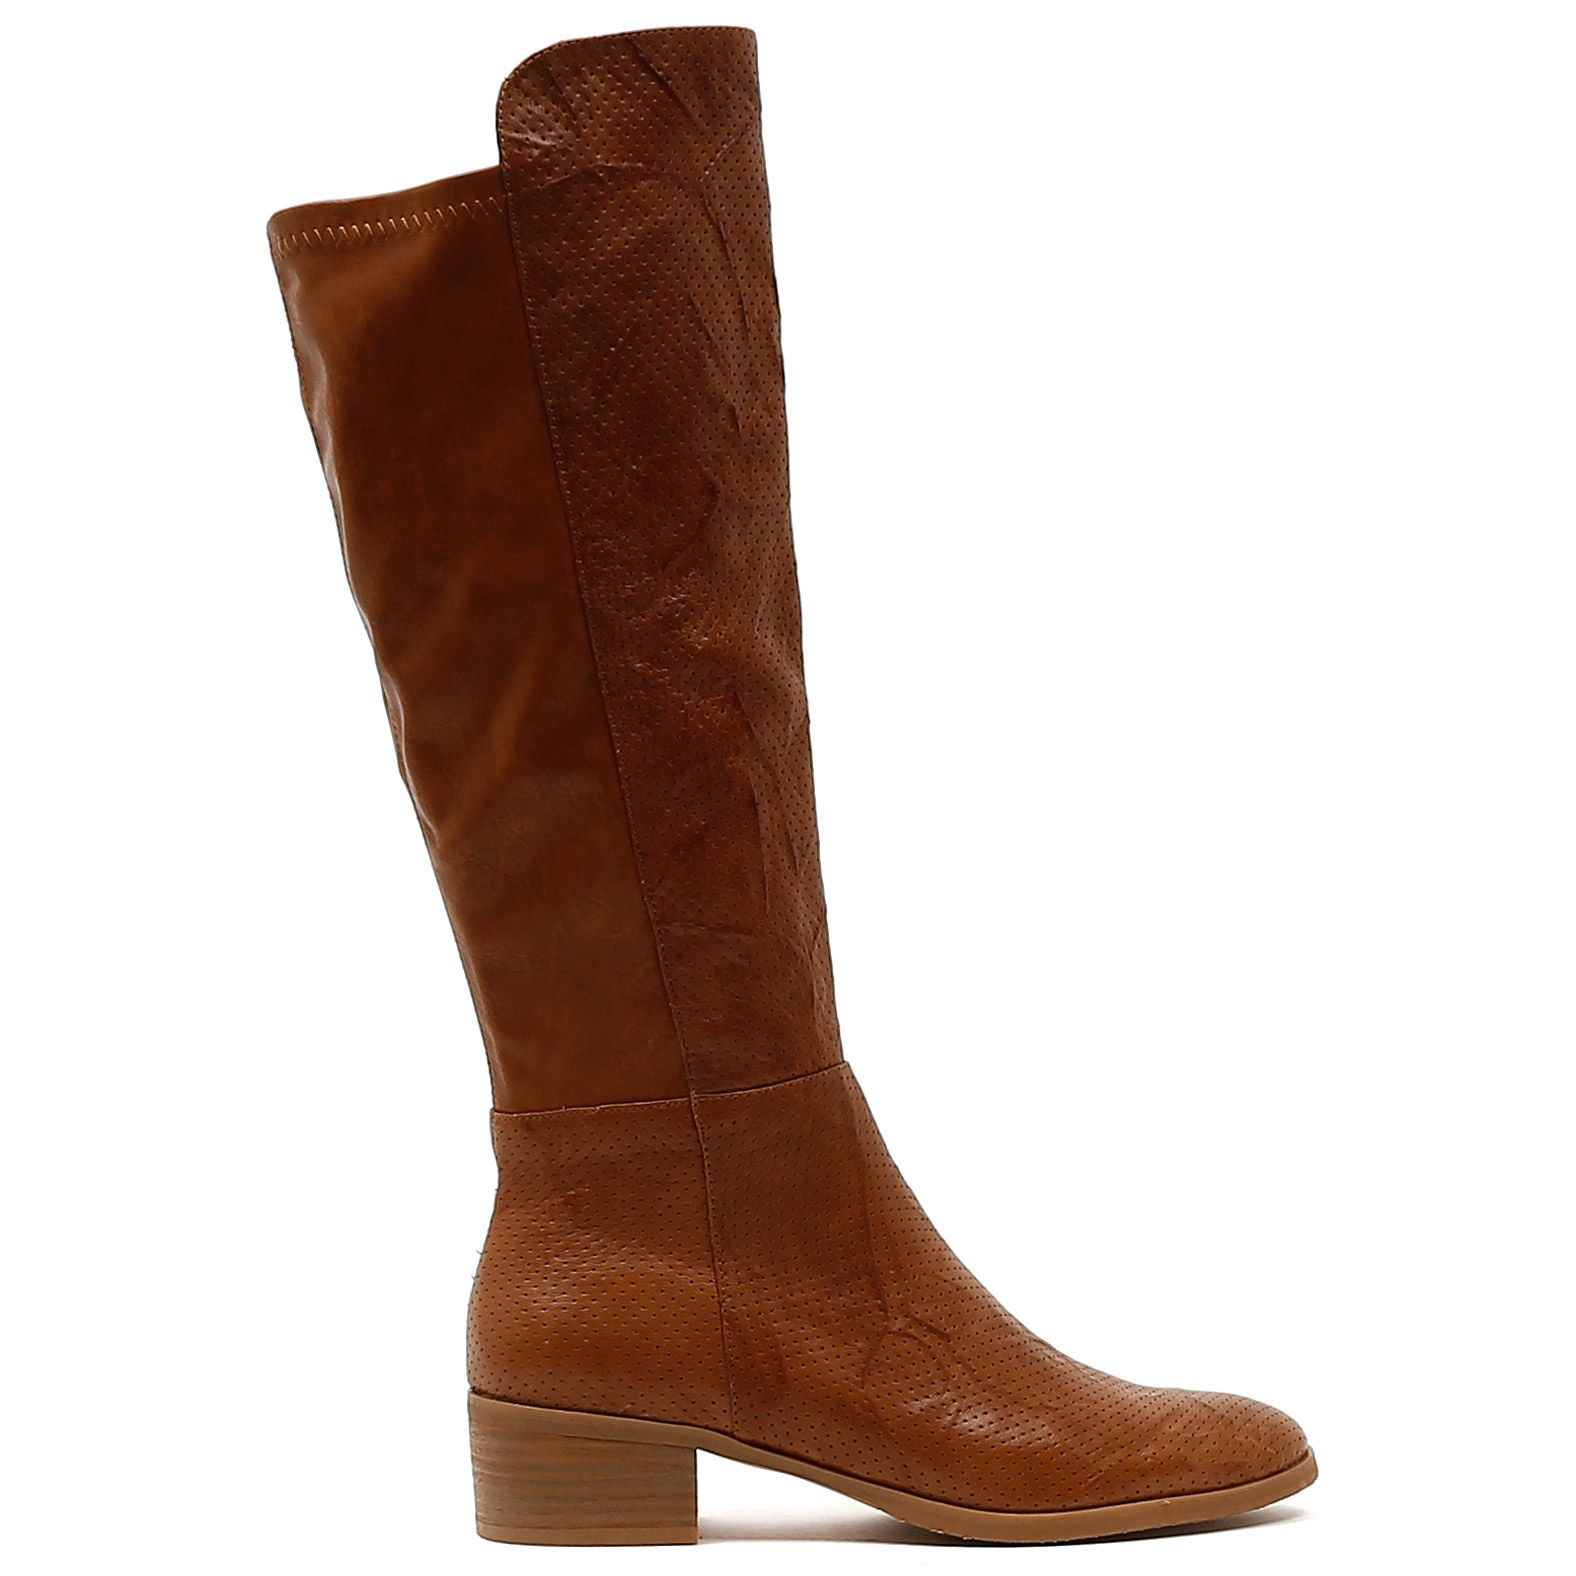 TIPTON by Django and Juliette. Classic, chic and tricked up with the trend  of. Leather Knee High BootsTan ...